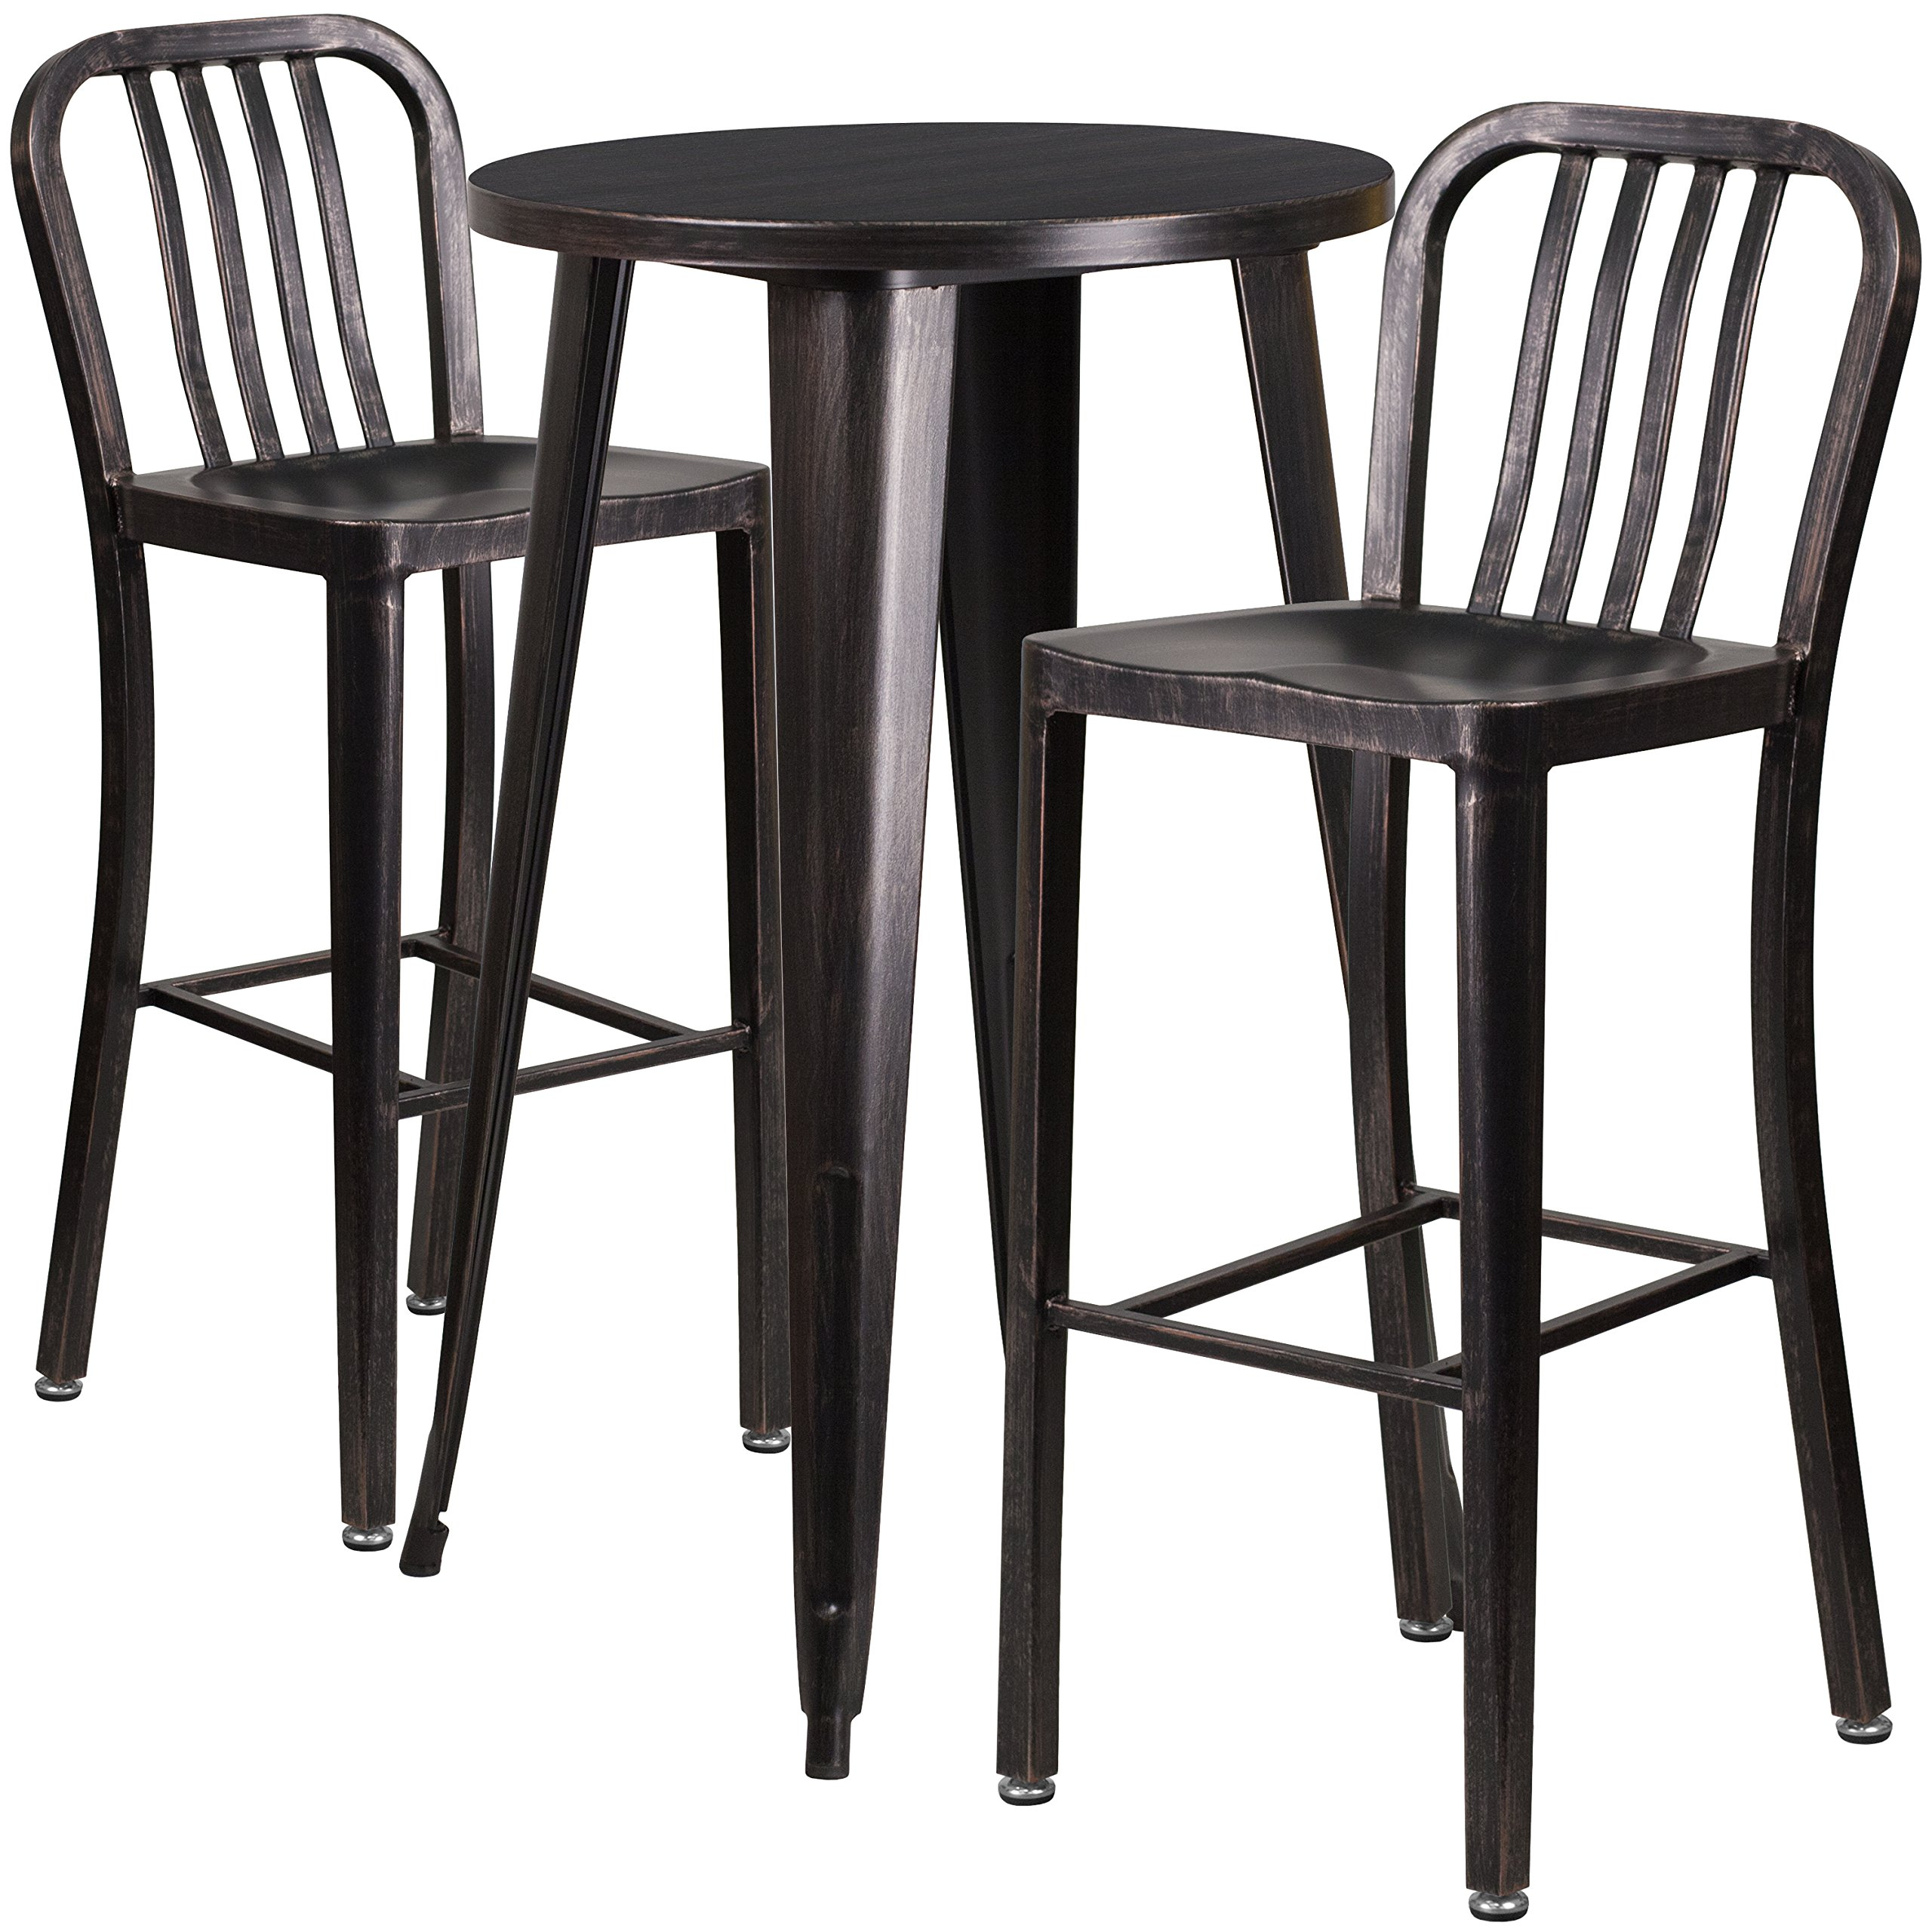 Flash Furniture 24'' Round Black-Antique Gold Metal Indoor-Outdoor Bar Table Set with 2 Vertical Slat Back Stools